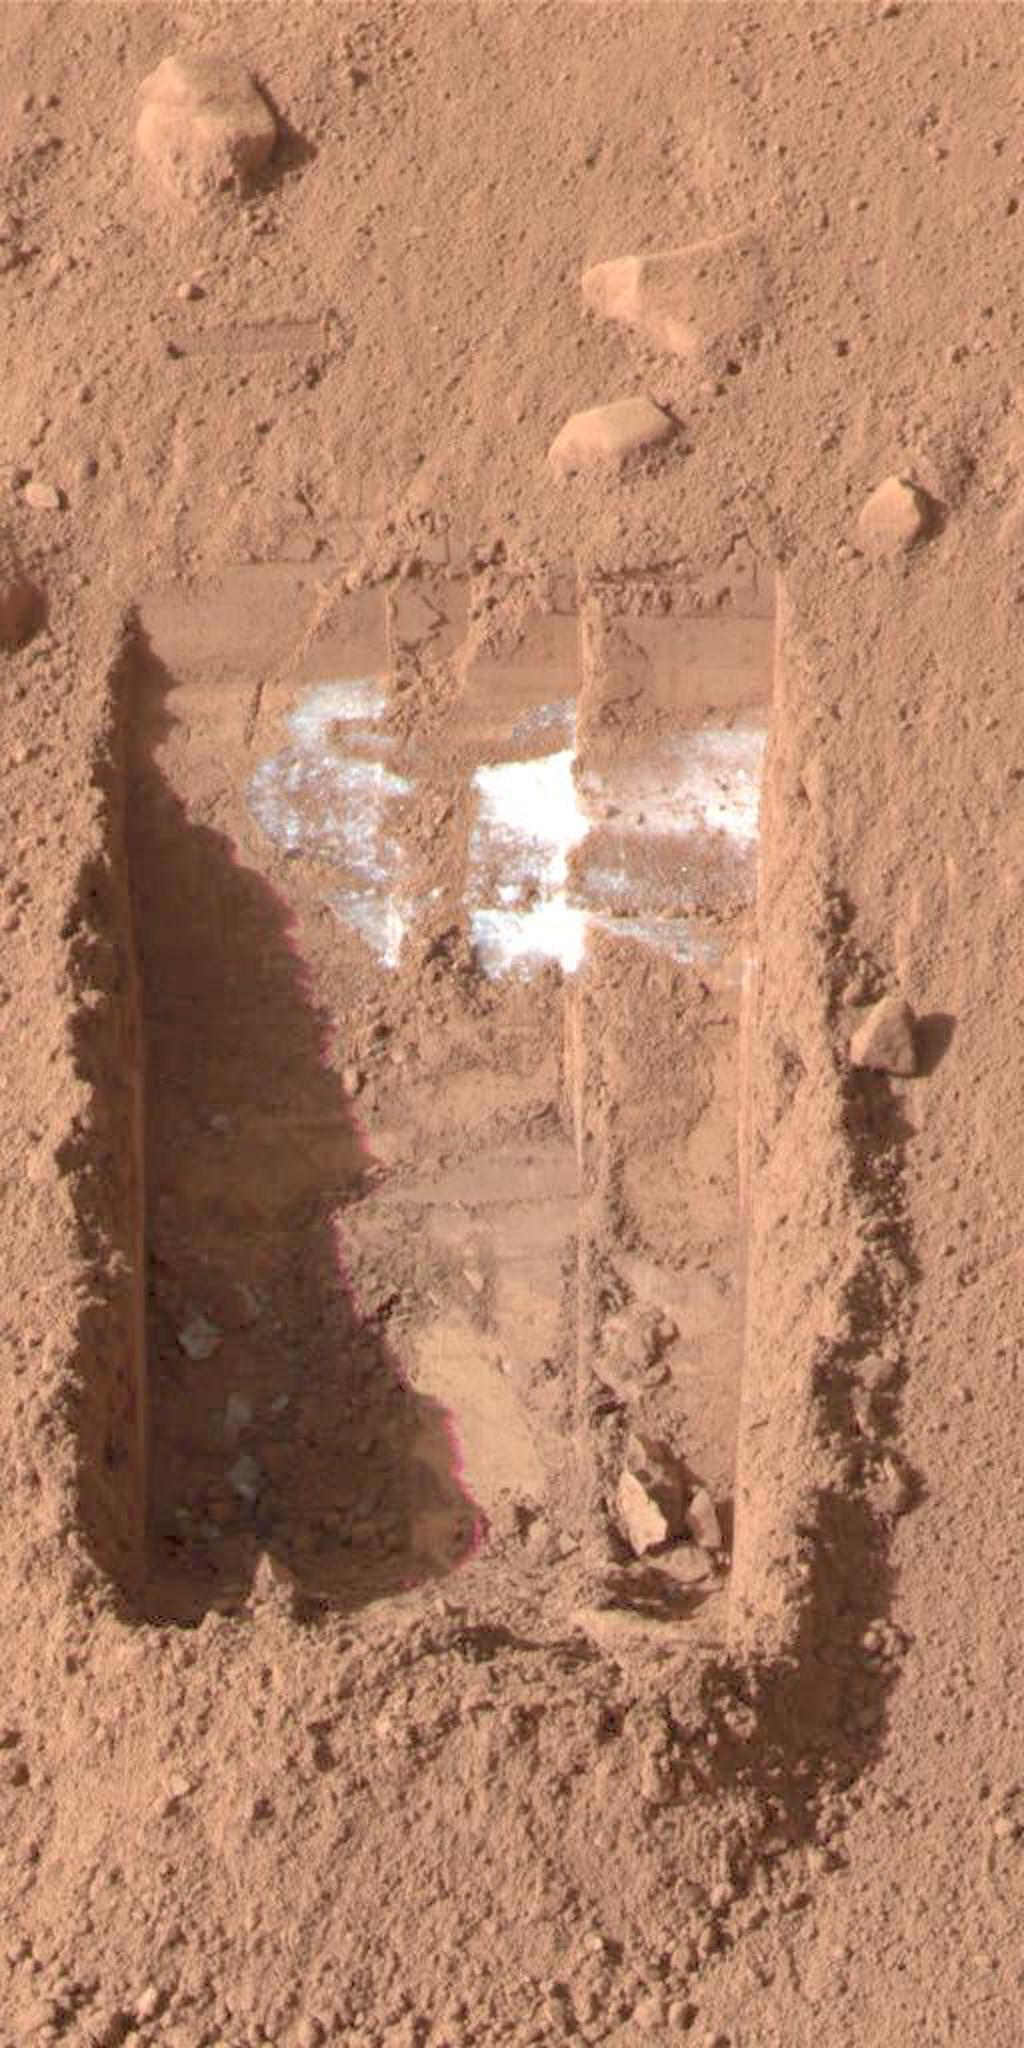 This color image was acquired by the Surface Stereo Imager on NASA's Phoenix Mars Lander on the 21st day of the mission, or Sol 20 (June 15, 2008). It shows lumps of ice in the lower left corner of a trench nicknamed 'Dodo-Goldilocks.'